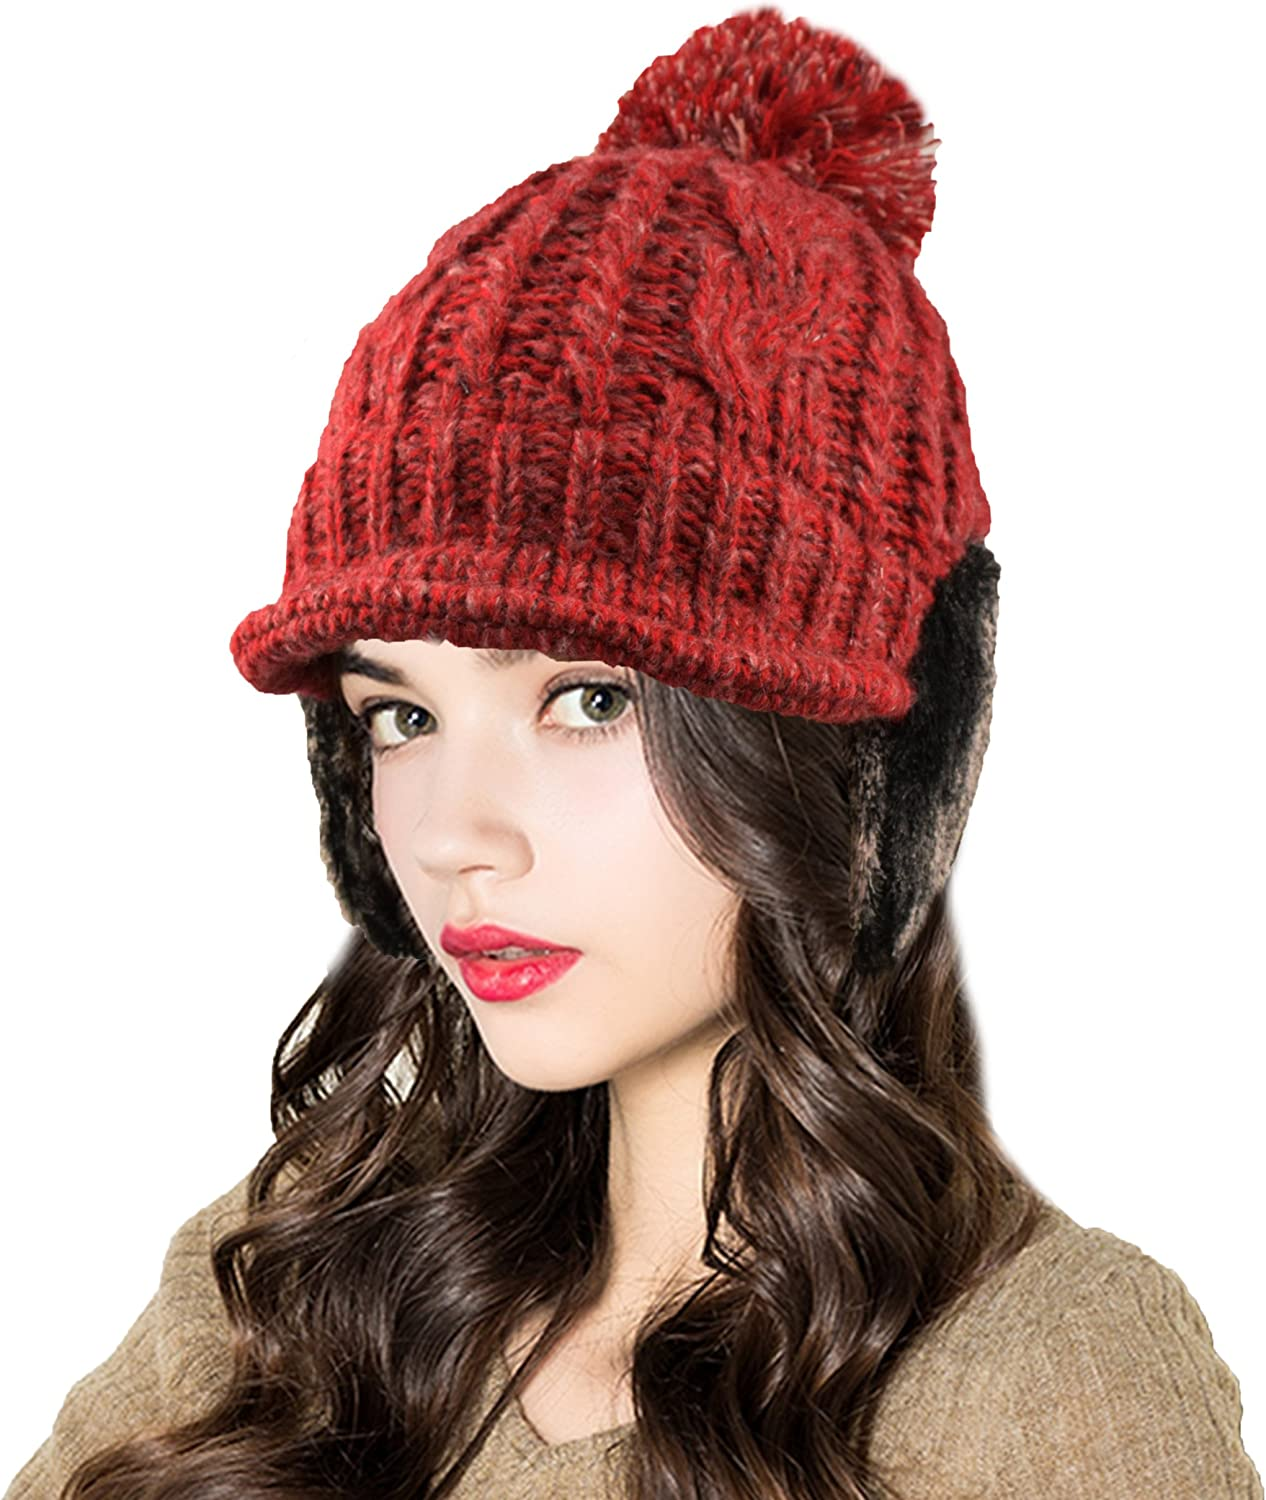 Ellewin Winter Cable Knitted Hat with Visor Bill and Earmuffs for Women and Girls